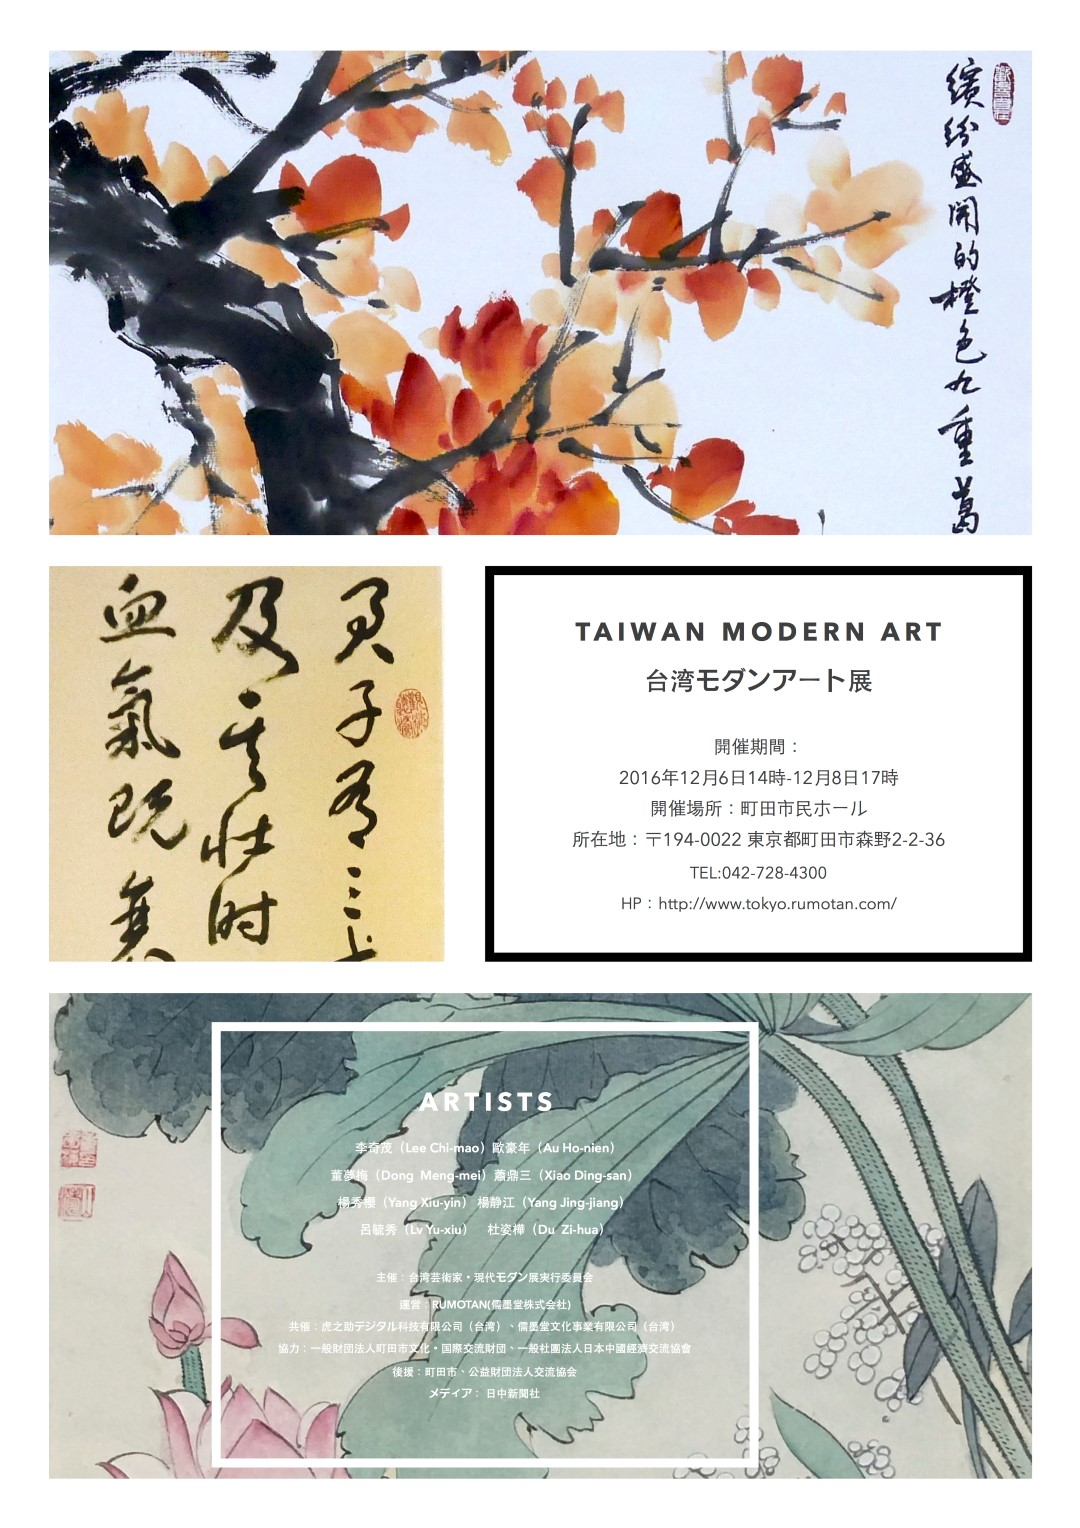 Taiwan Modern Art Exhibition(台湾モダンアート展)